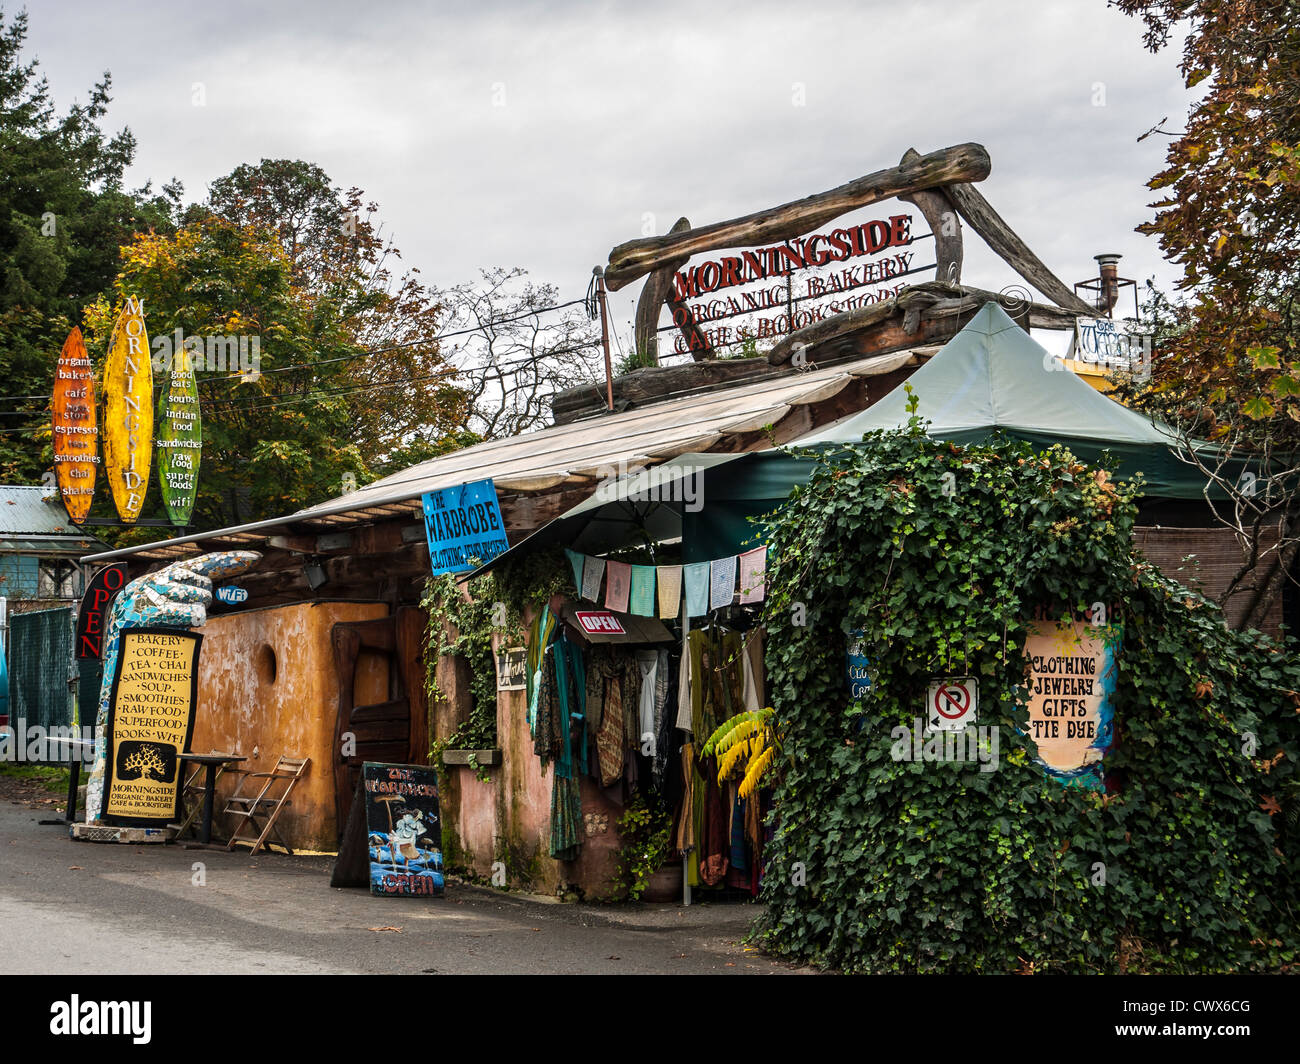 Morningside Organic Bakery, Cafe, Bookstore and Gift shop, Fulford Harbour, Salt Spring Island, British Columbia, - Stock Image